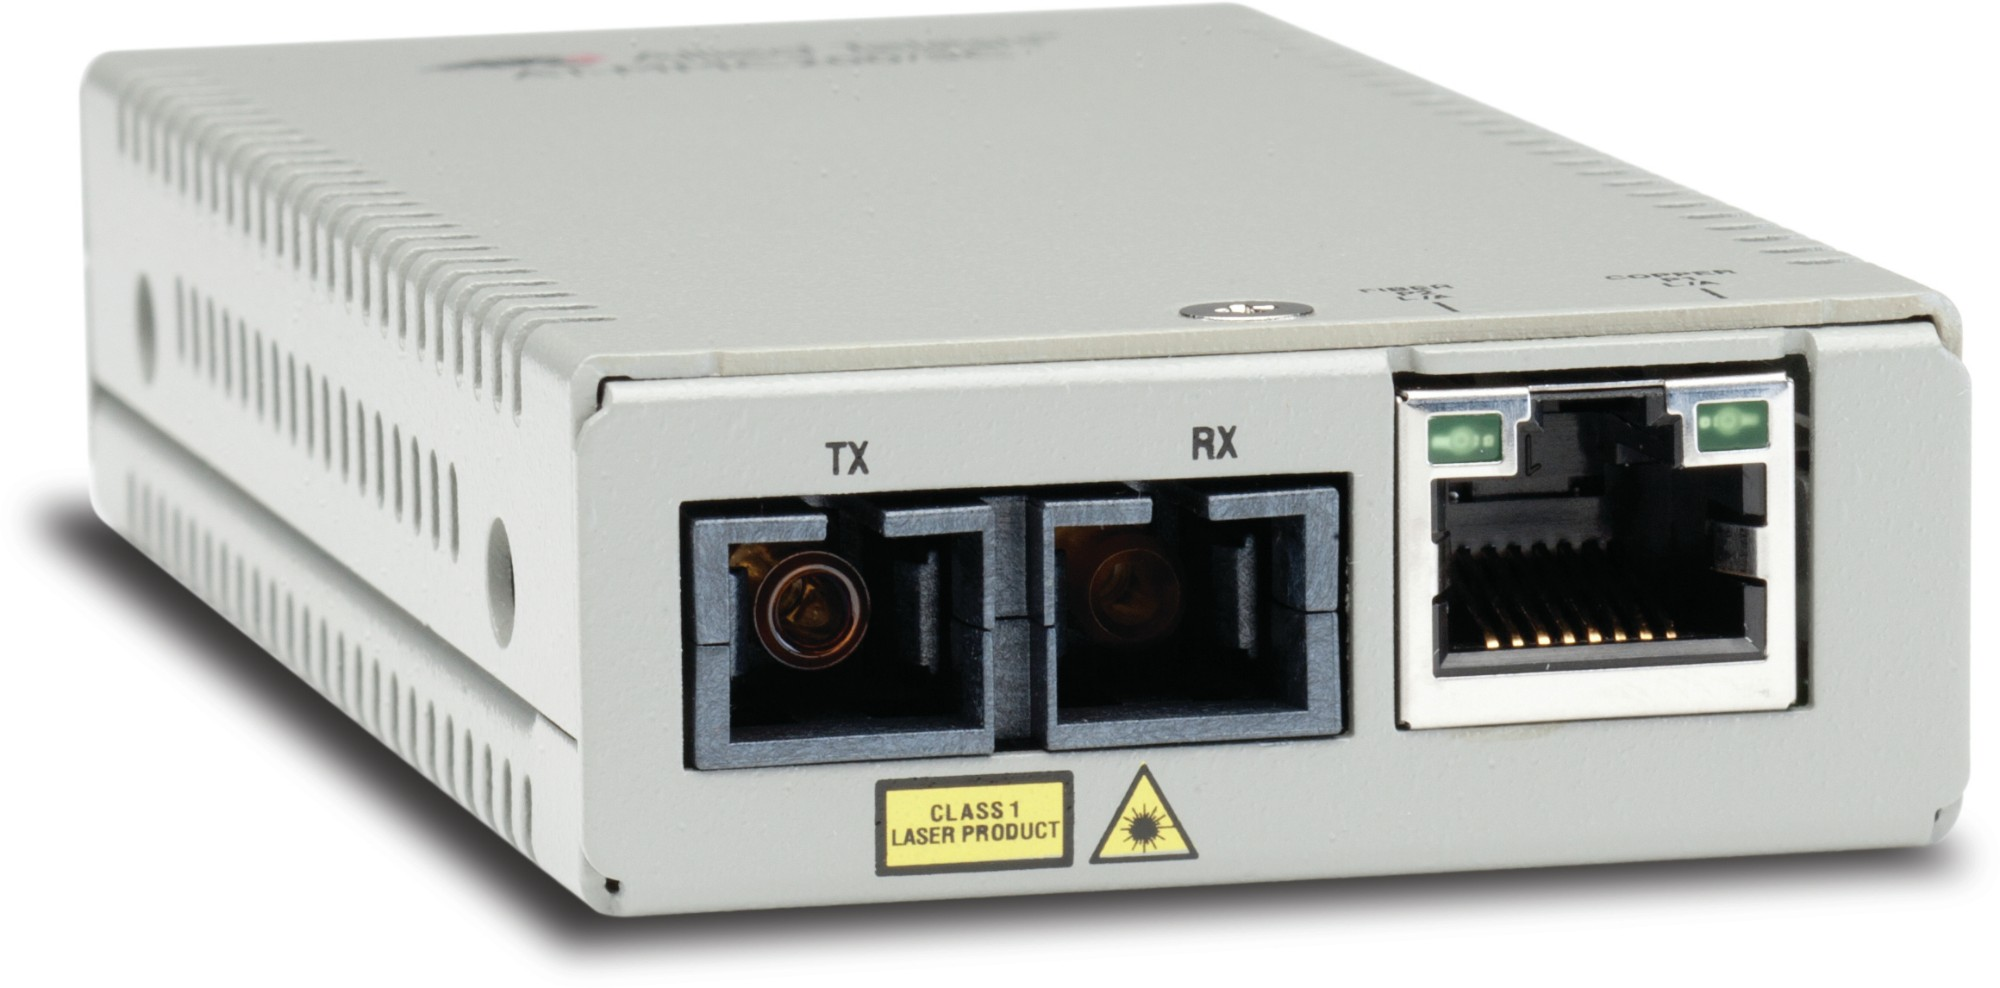 Allied Telesis AT-MMC200/SC-60 100Mbit/s 1310nm Multi-mode Silver network media converter